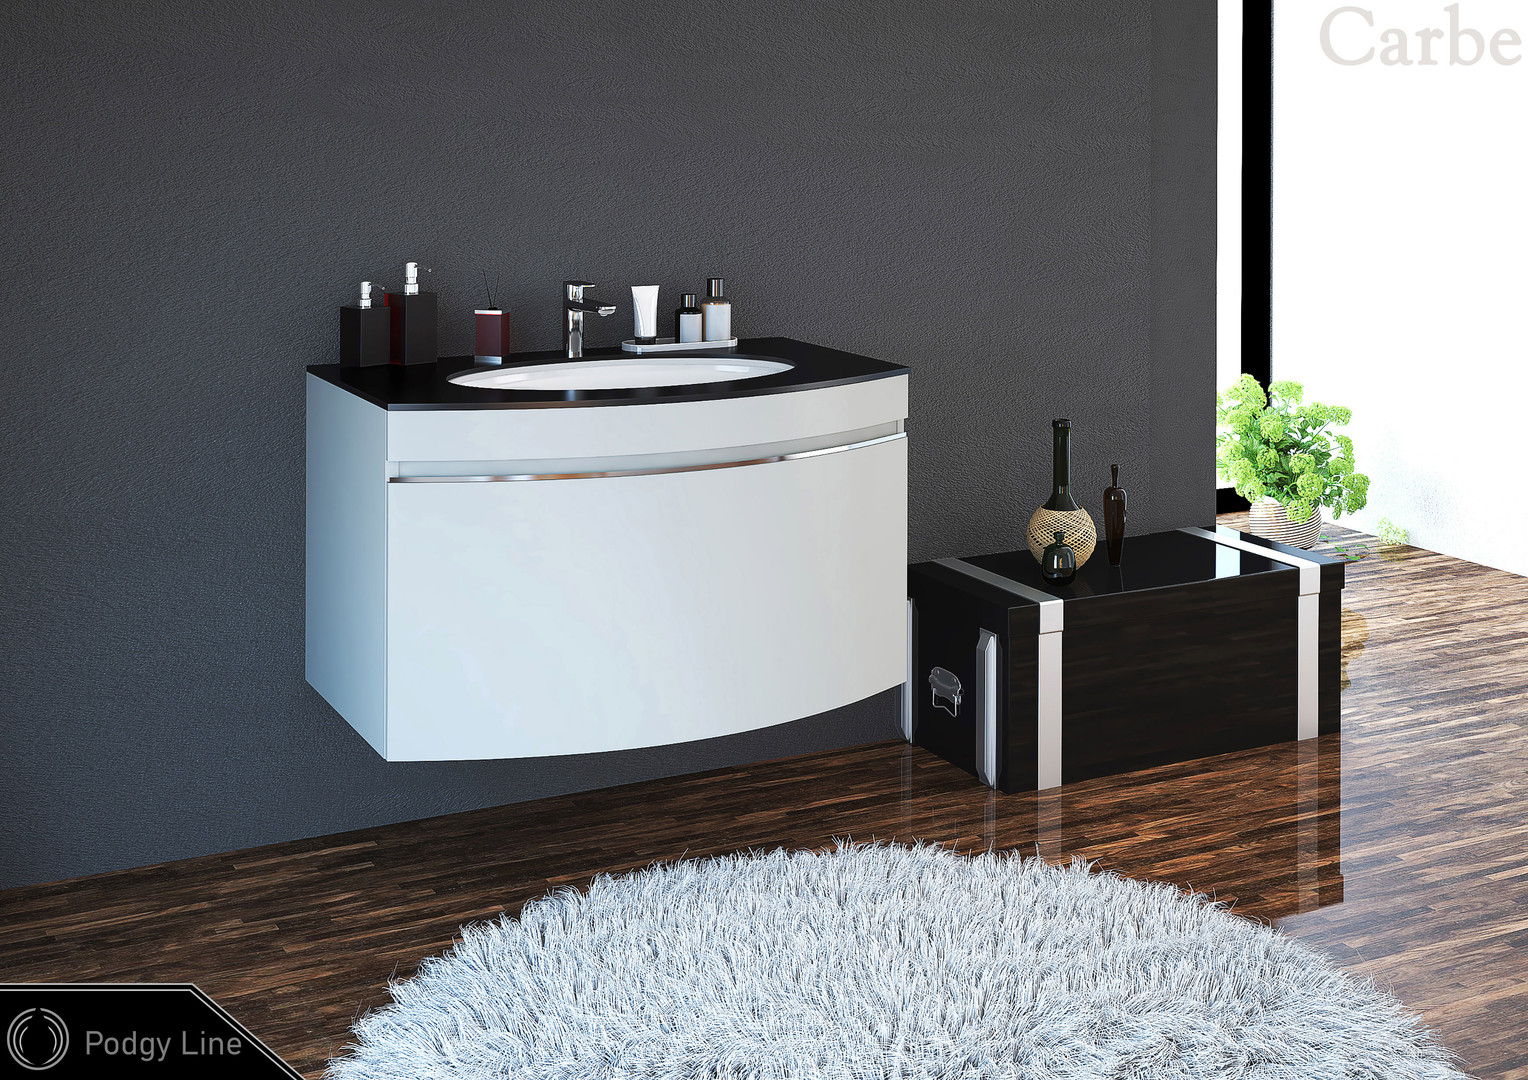 PodgyLine - Pearl Grey Supermatt, Glass Top - Black, Ceramic Washbasin, Soft Closing